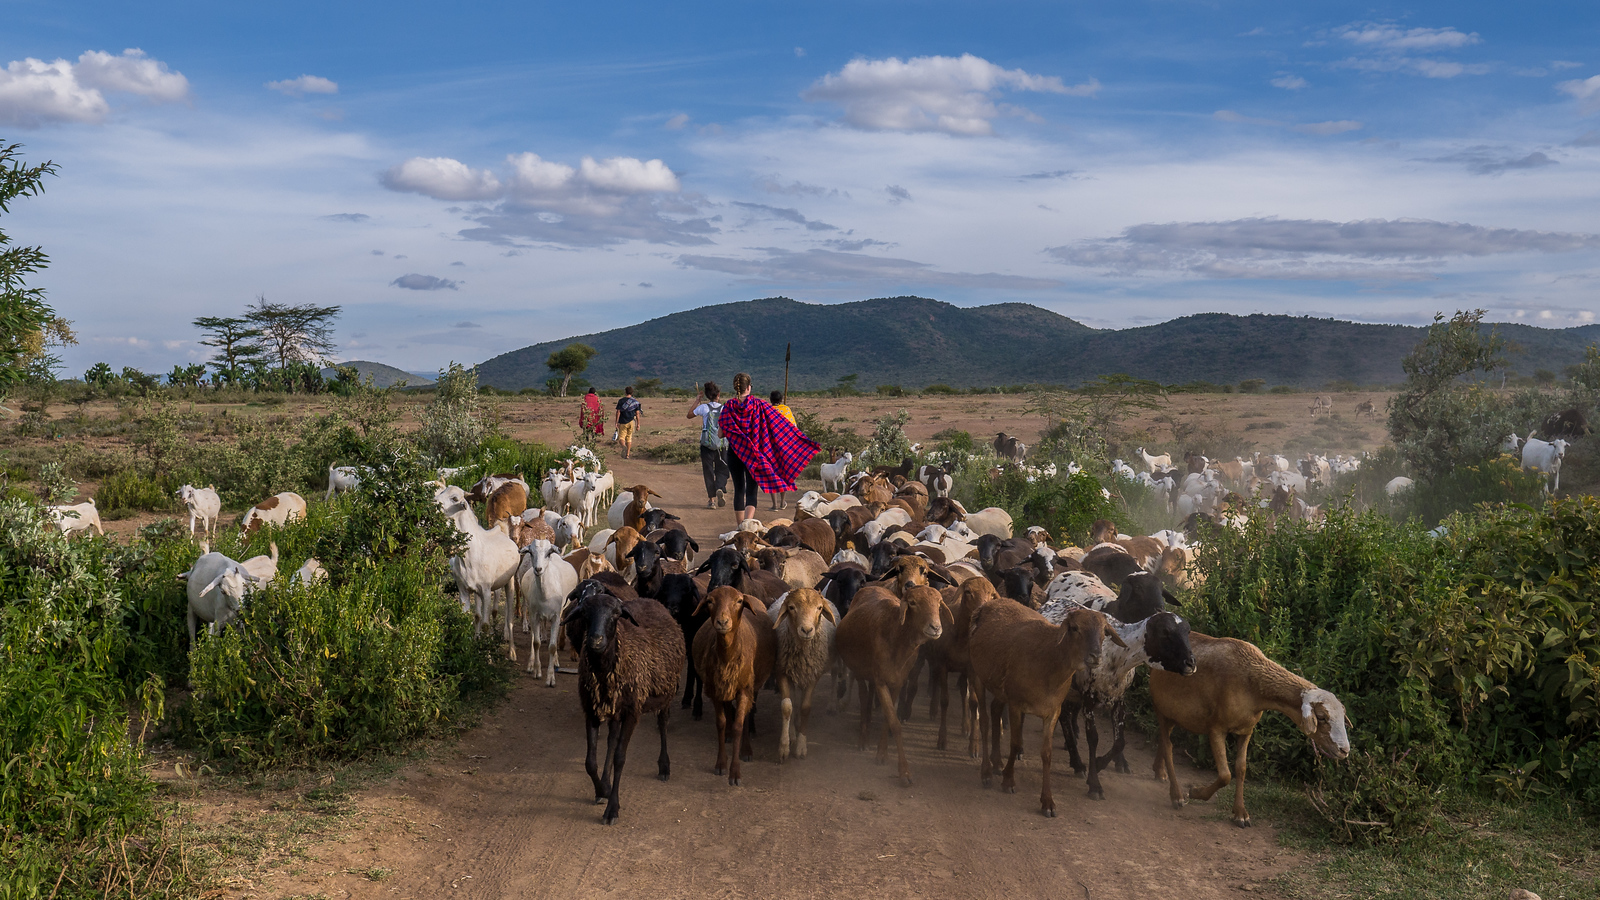 Walking the Maasai Mara in search of our camping spot for the night — we hit a goat traffic jam.